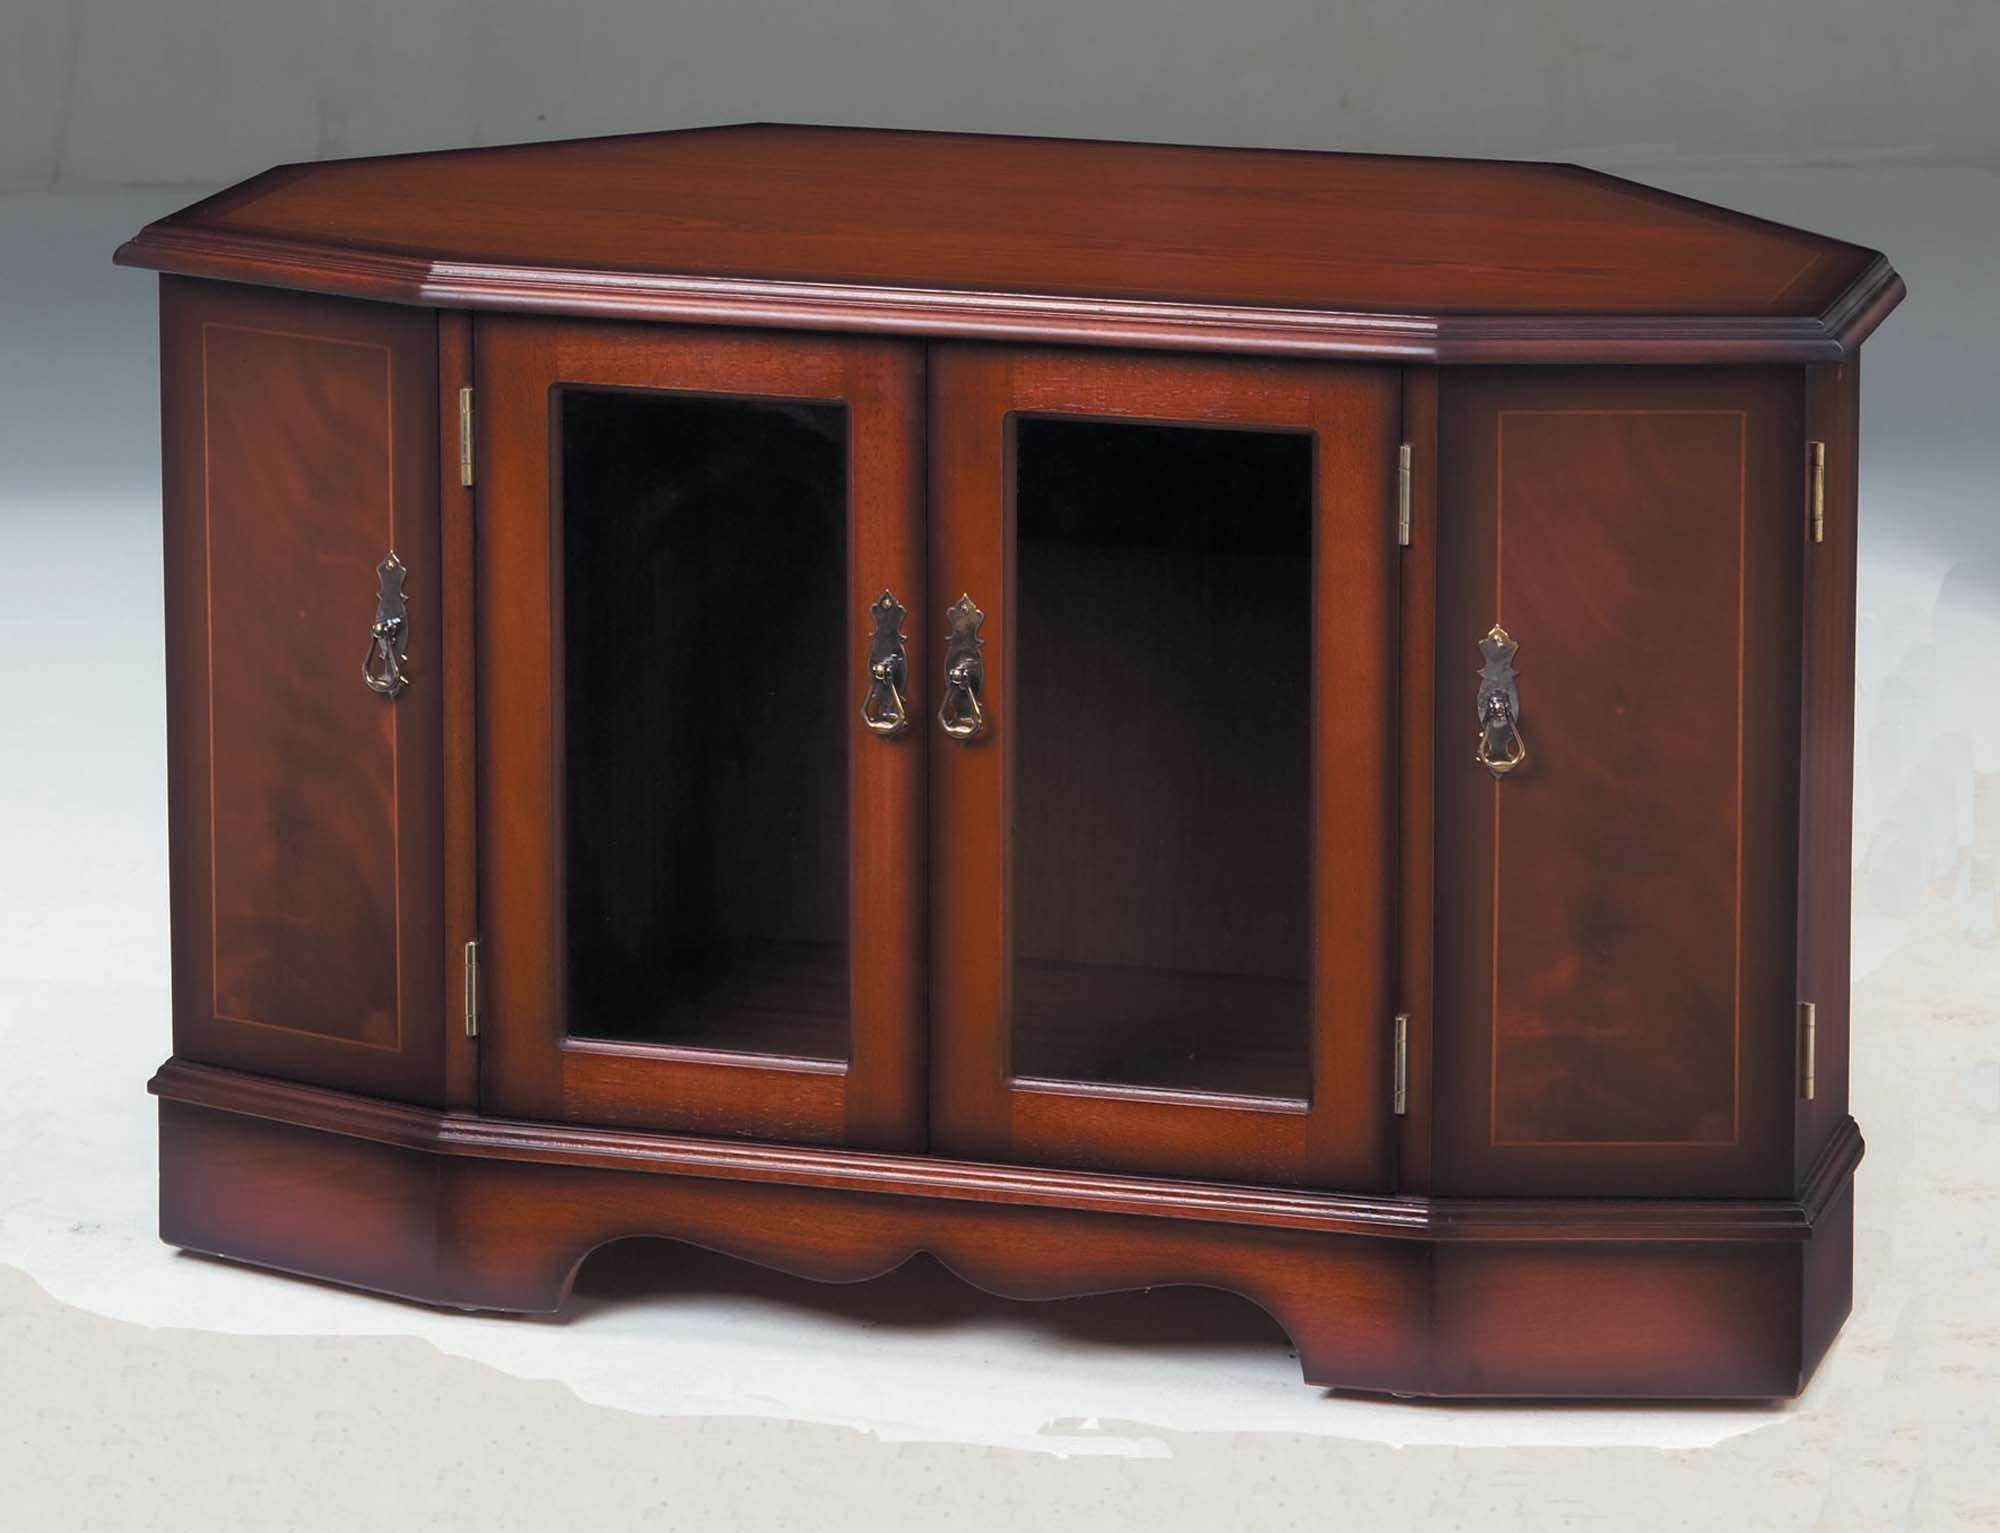 Strongbow Mahogany 1037 Corner Tv Cabinet | Tr Hayes – Furniture Regarding Mahogany Corner Tv Cabinets (View 2 of 20)